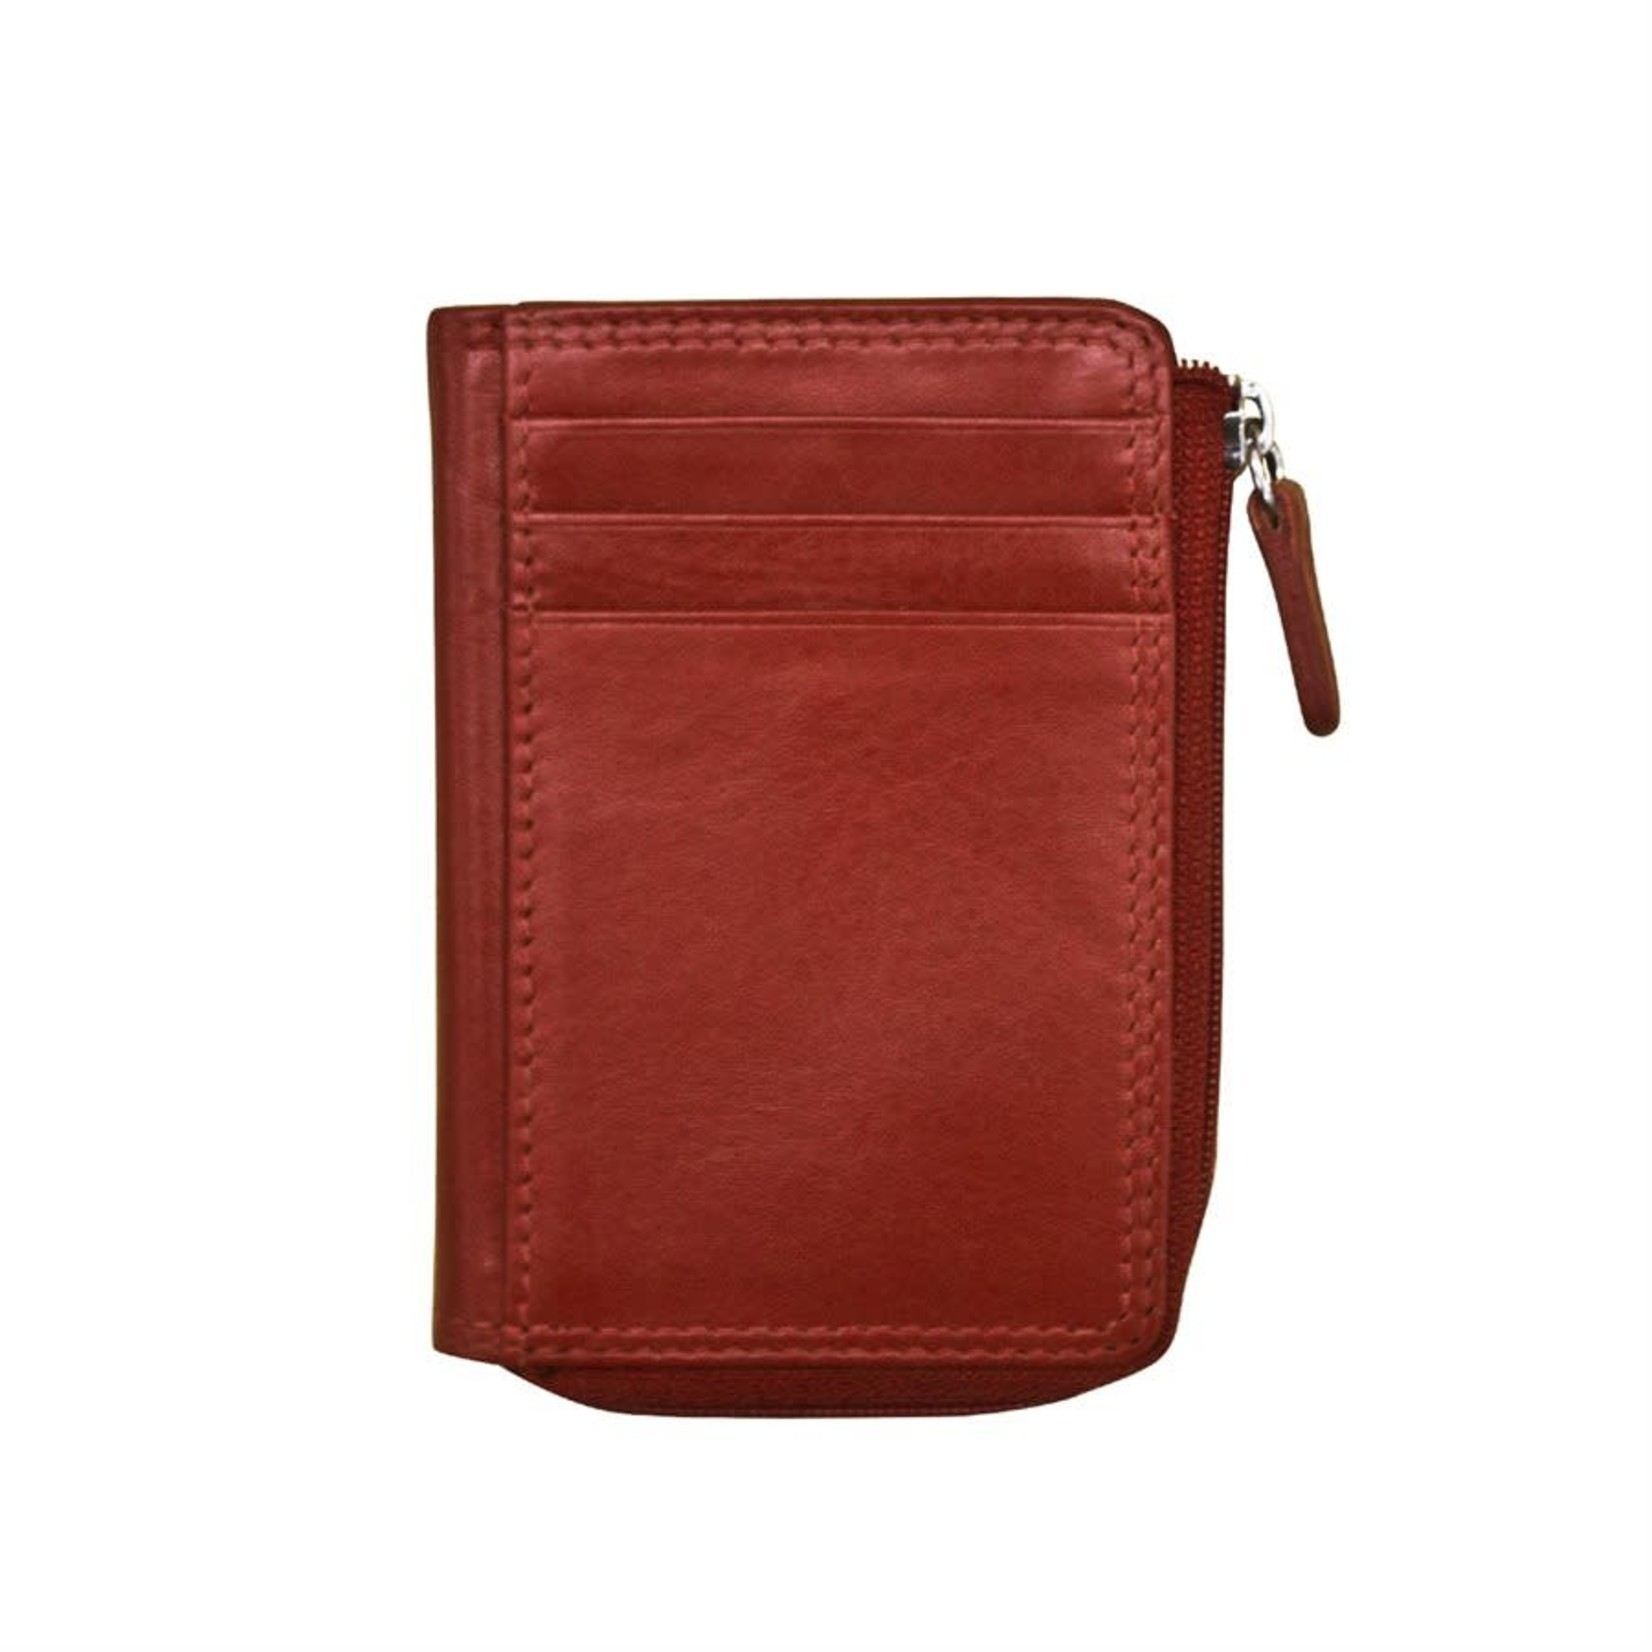 Leather Handbags and Accessories 7411 Red - RFID CC ID Holder